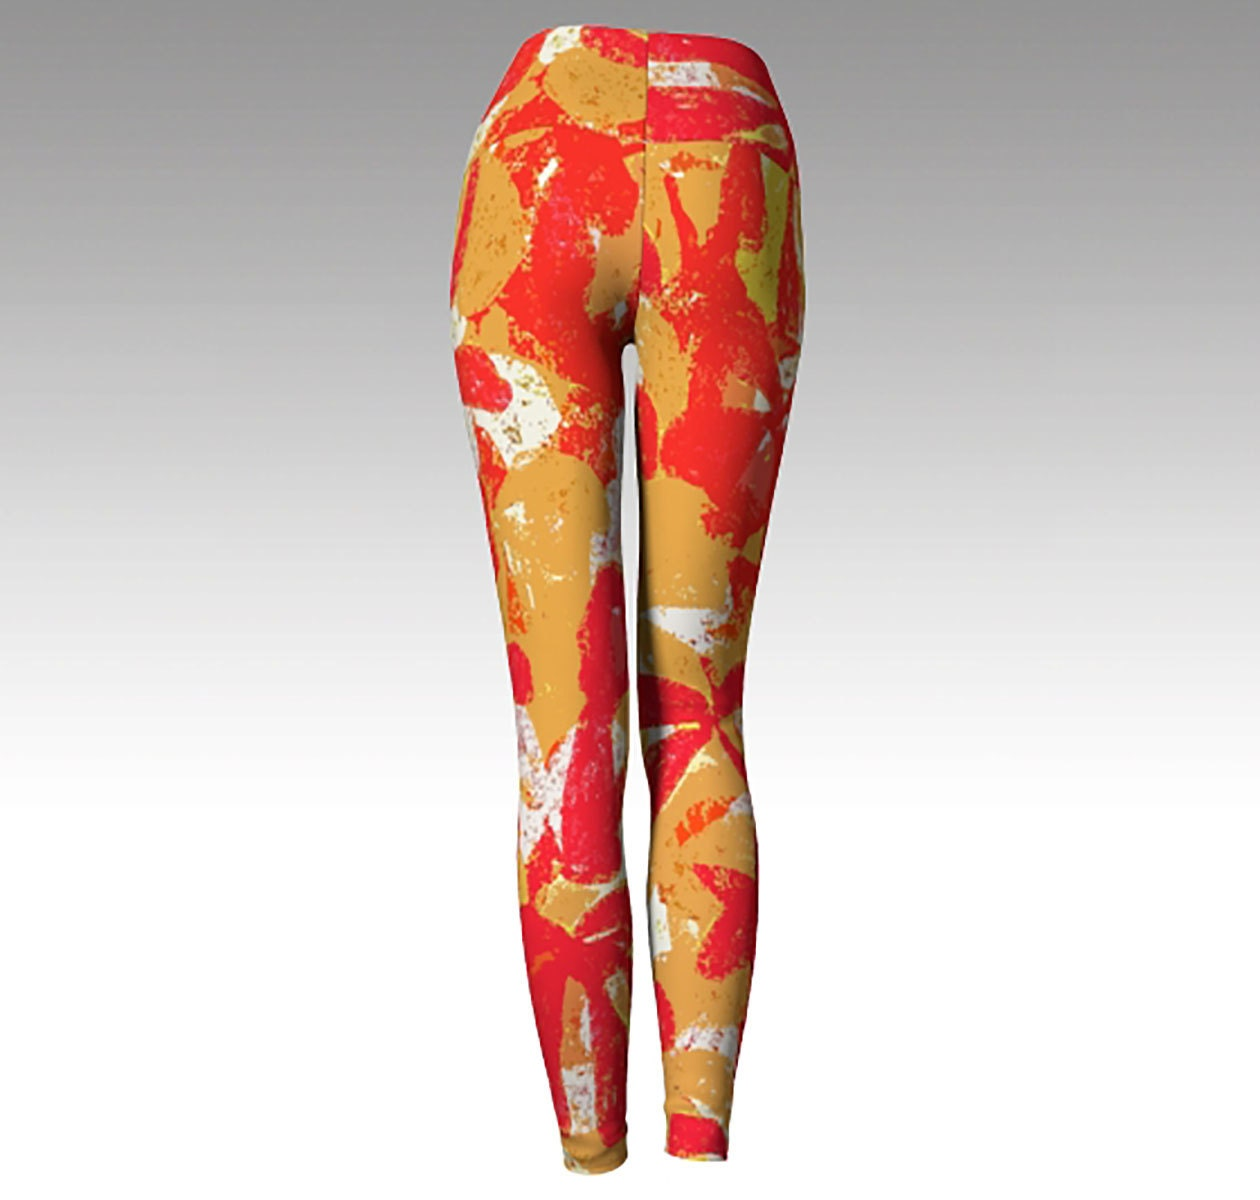 7c686a5e Kansas City Chiefs Leggings, Printed Leggings, Red and Gold Yoga ...